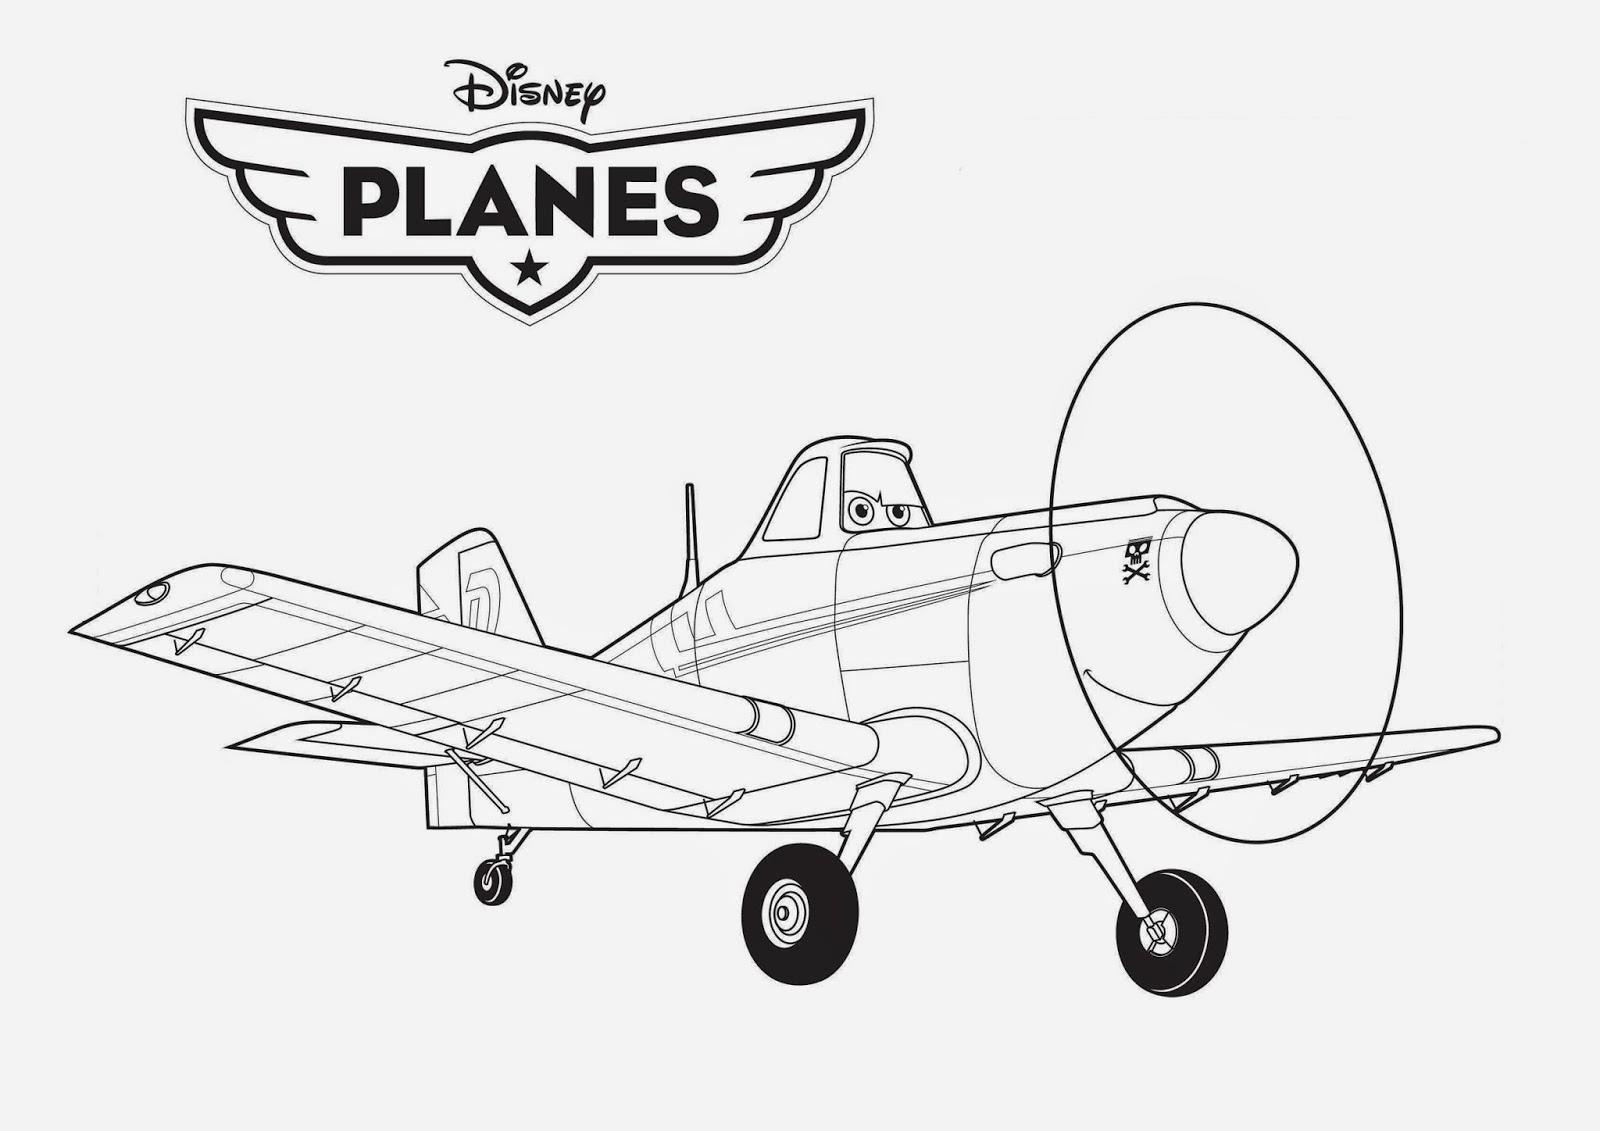 Disney Planes Coloring Drawing Free wallpaper